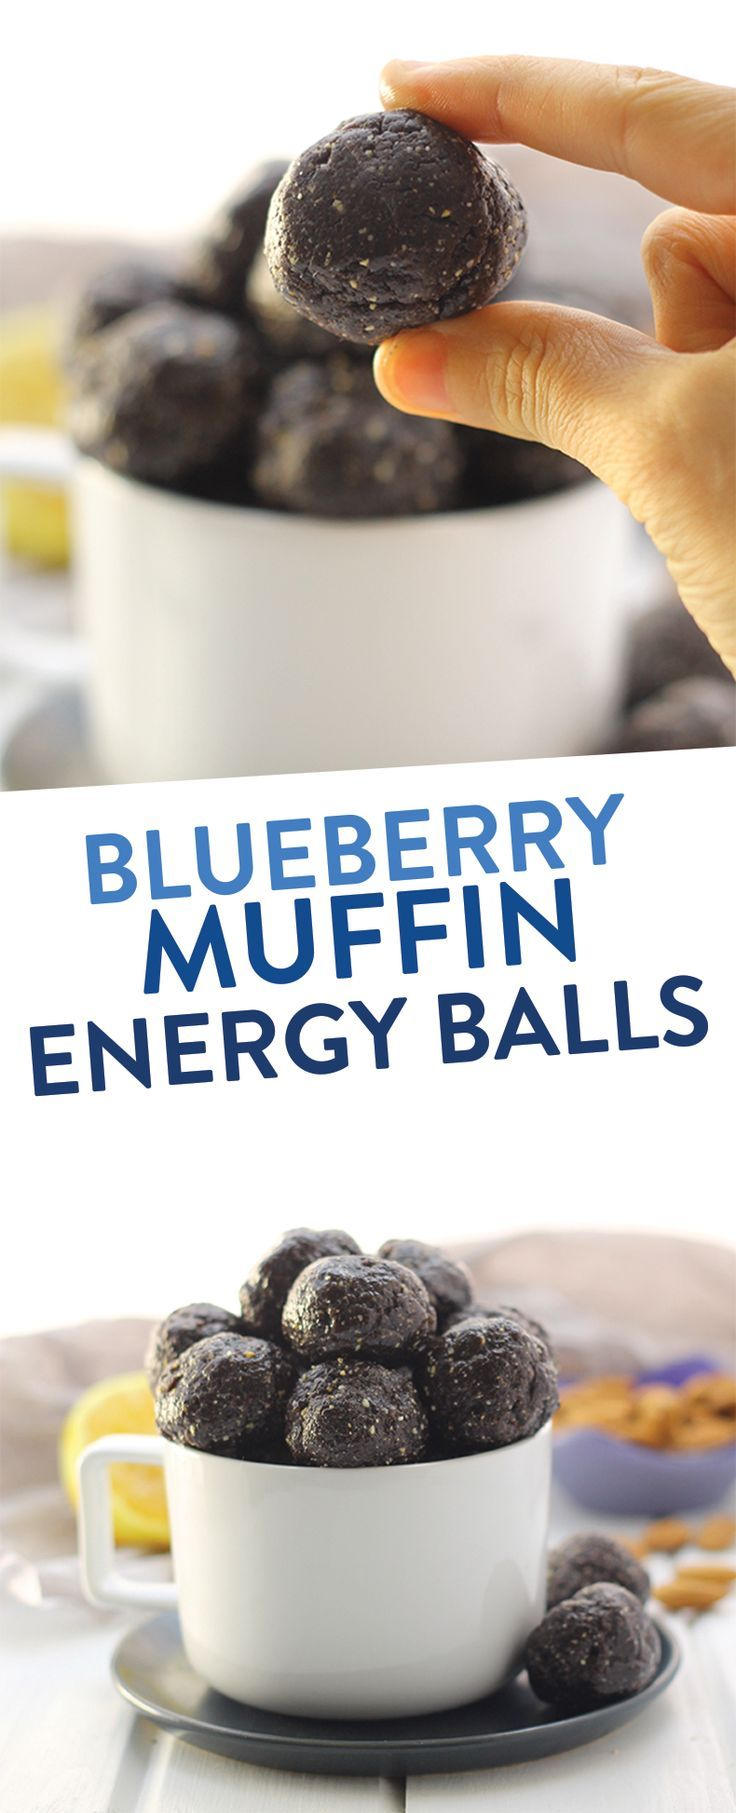 Want The Taste Of A Sweet And Delicious Blueberry Muffin Without